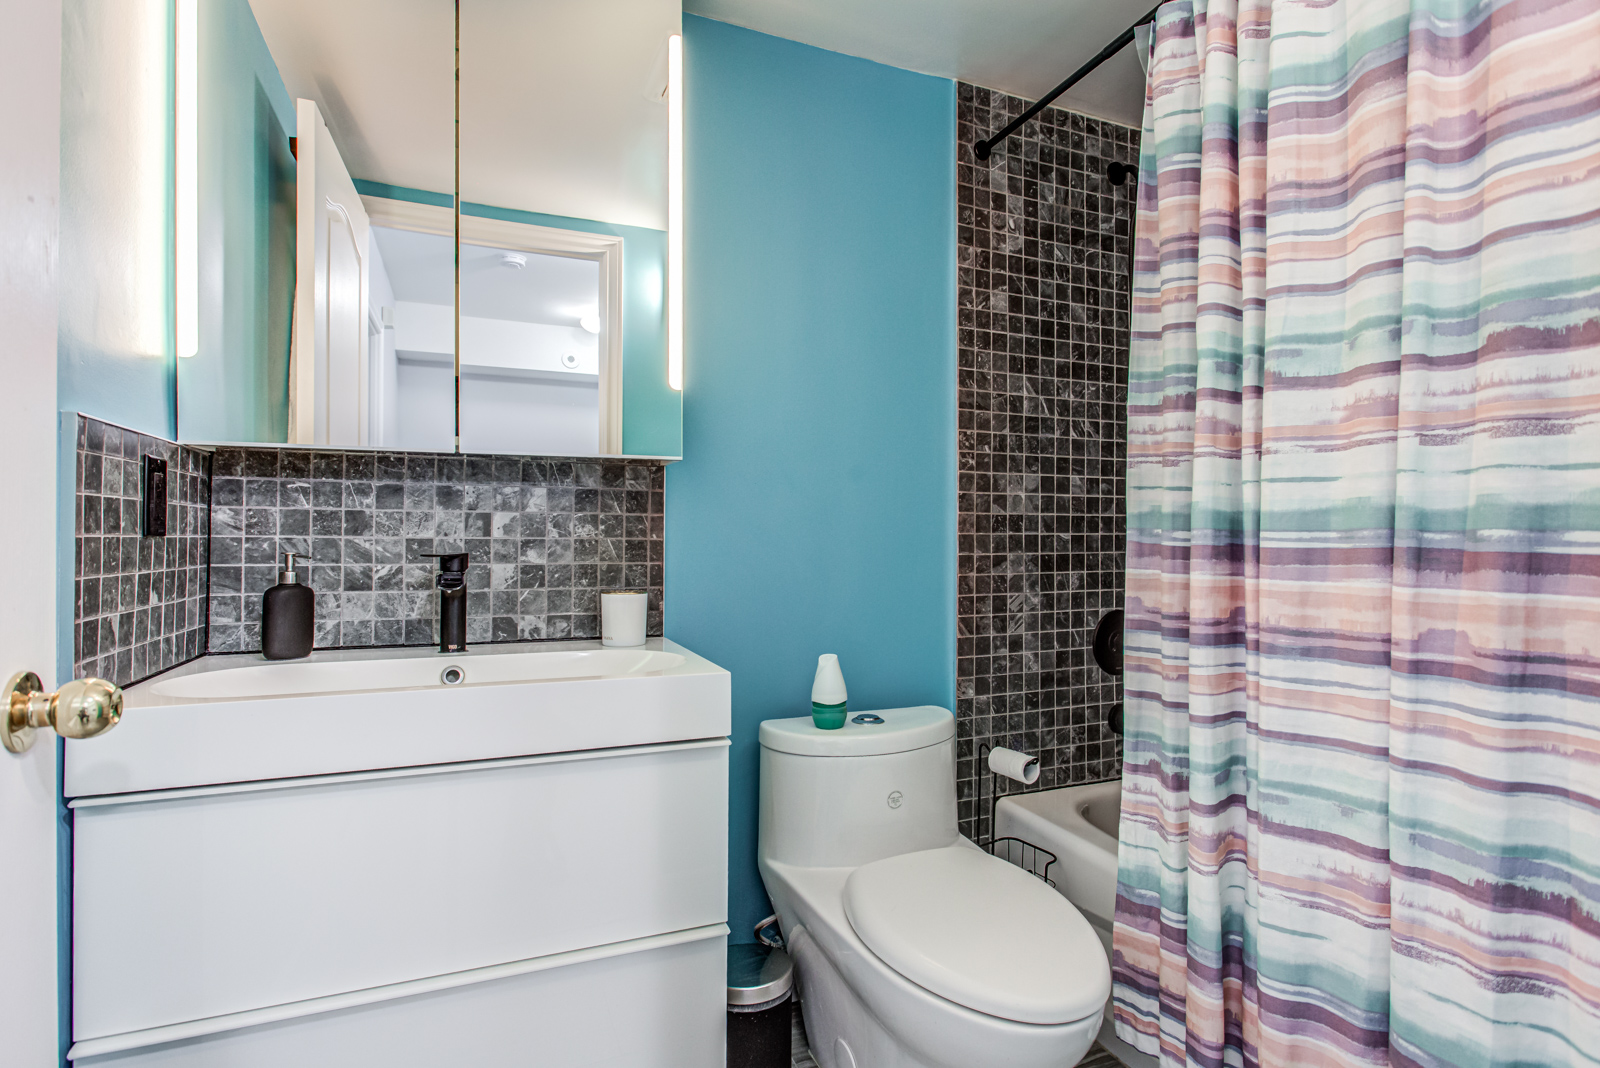 Newly-renovated bathroom with bright blue walls, small black tiles, colourful curtains and black faucet.